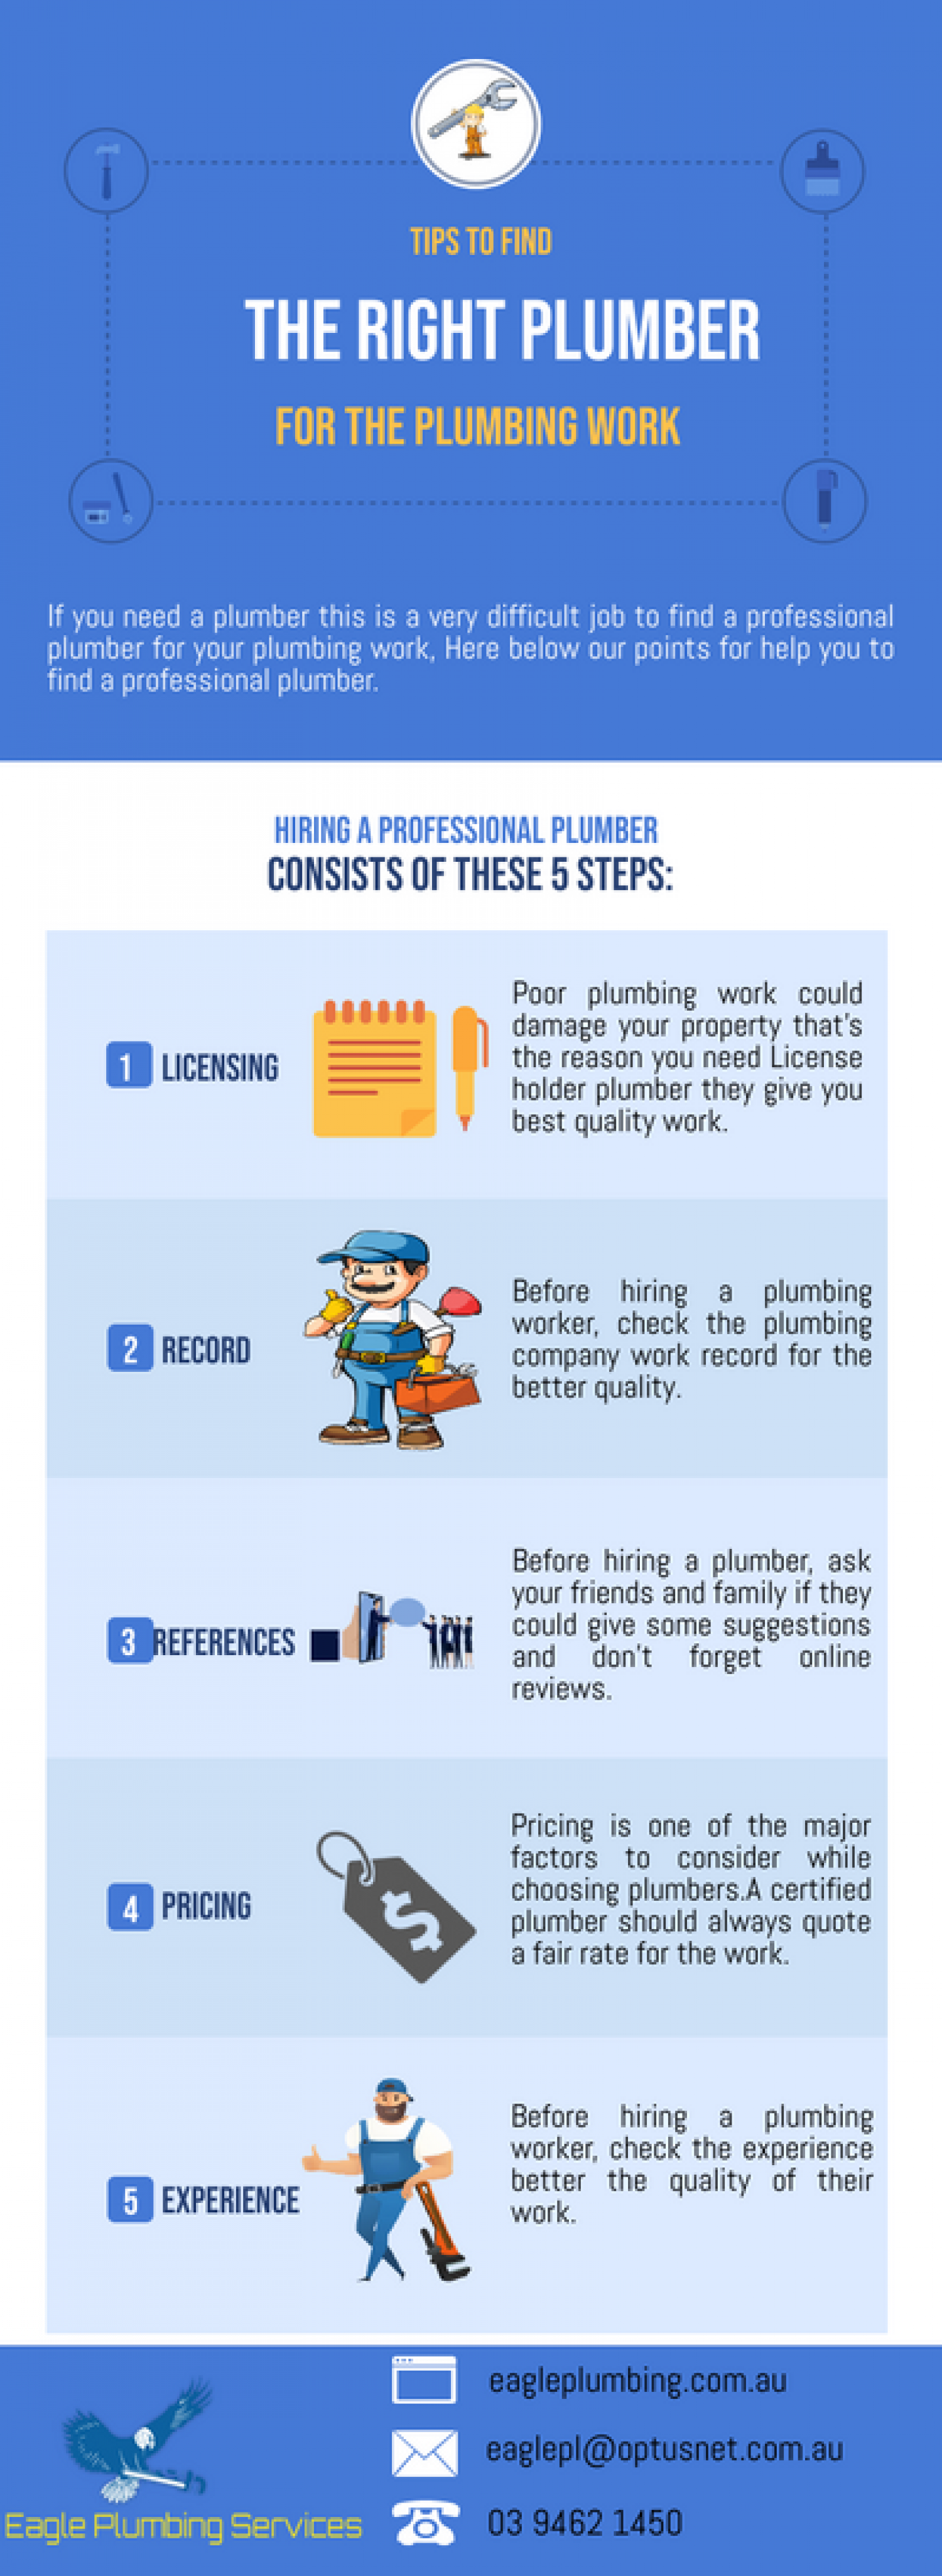 Tips To Find The Right Plumber For The Plumbing Work Infographic